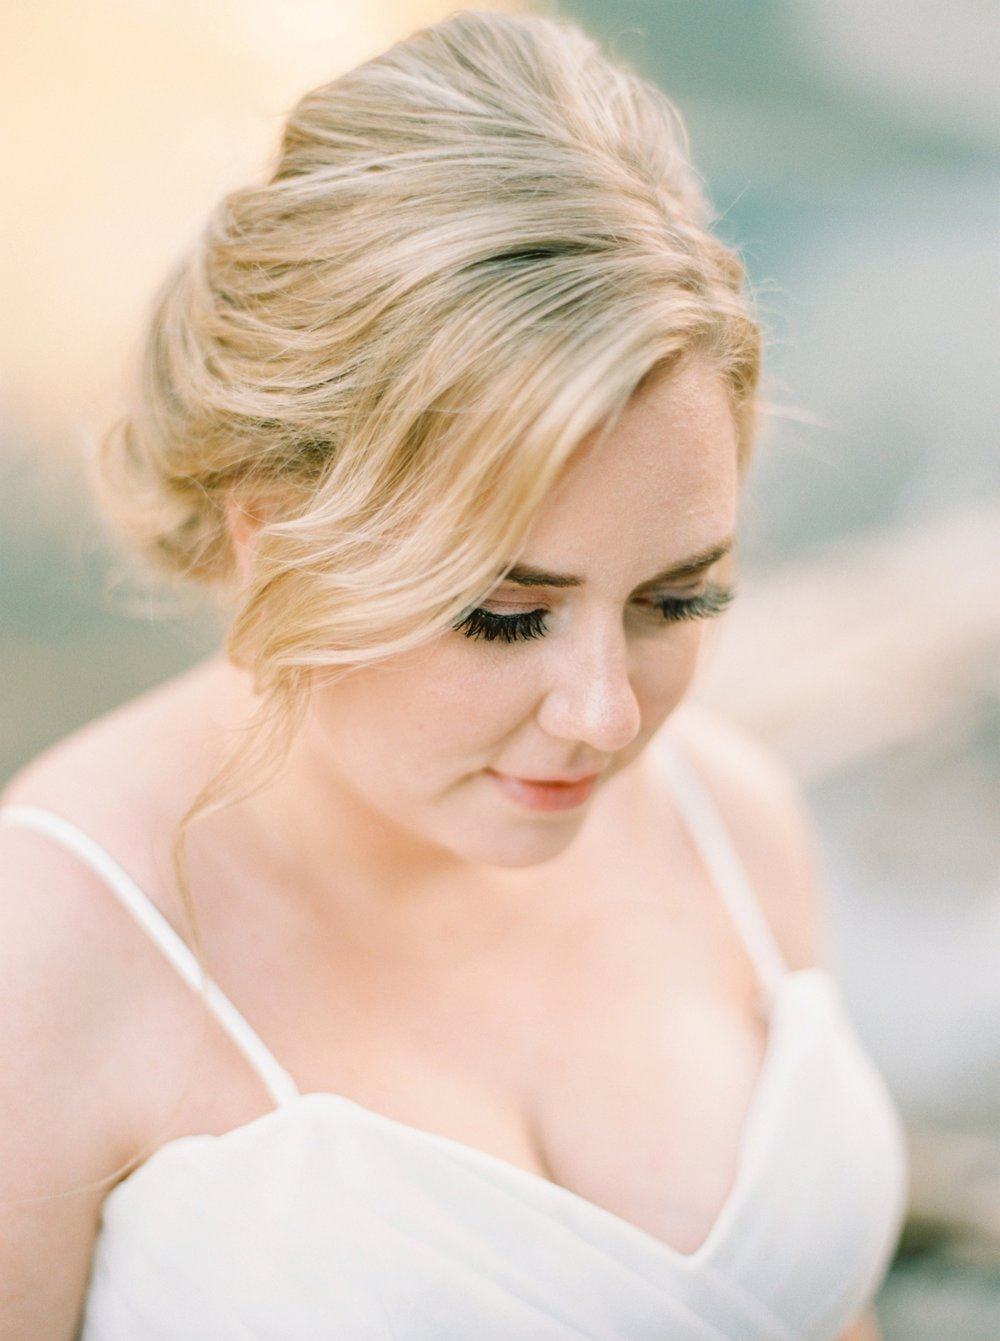 Calgary wedding photographers | banff wedding photographers | fine art film | Justine Milton Photography | wedding vows | elopement photographers | bride portraits | moraine lake